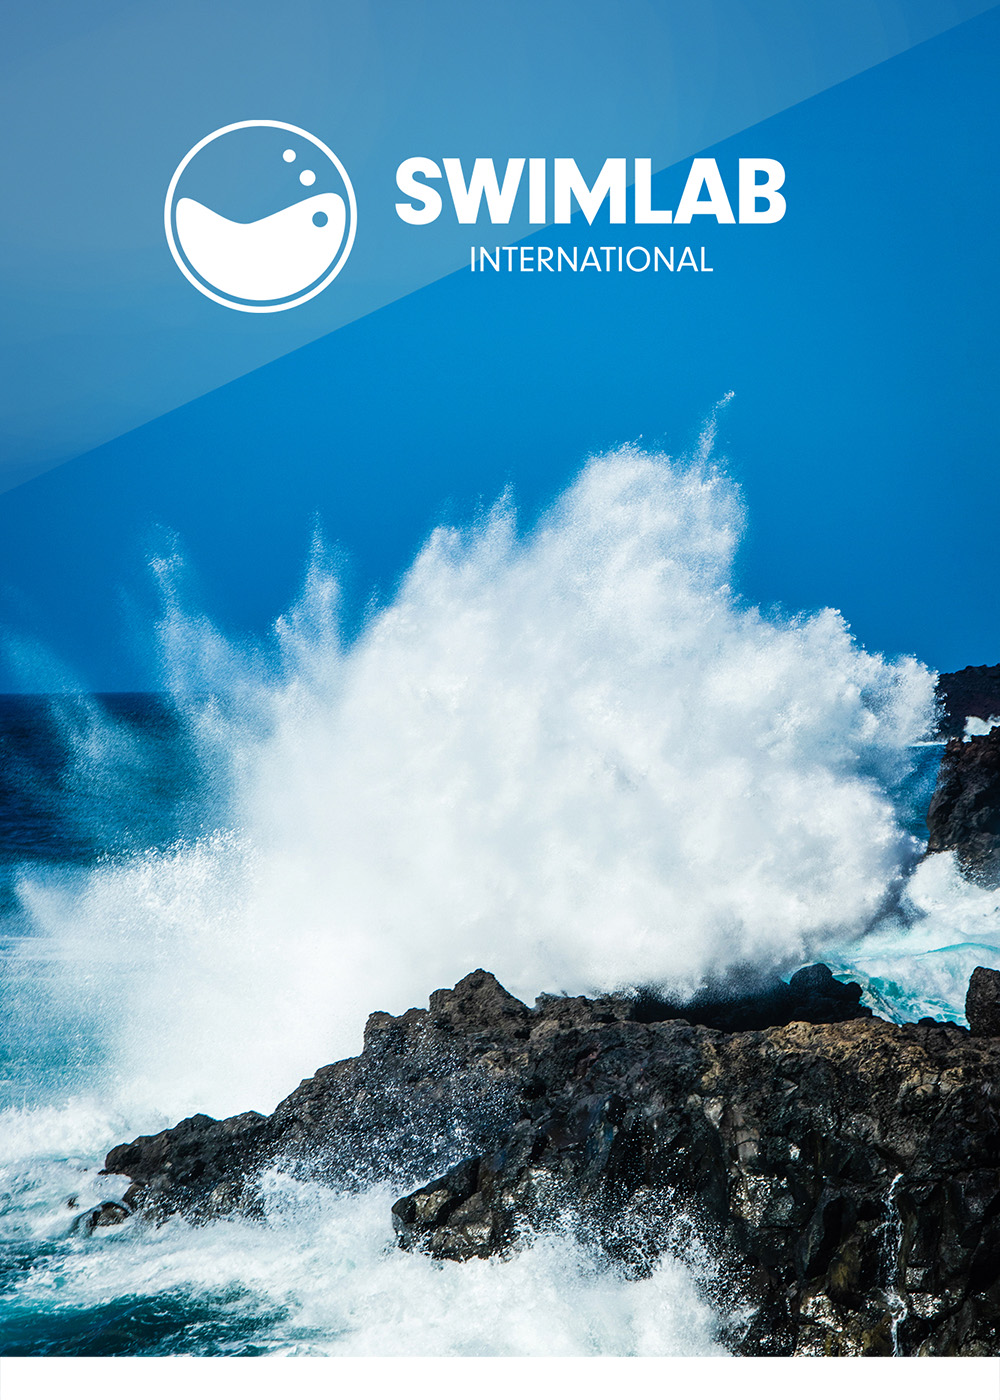 We Are Swim Lab International!